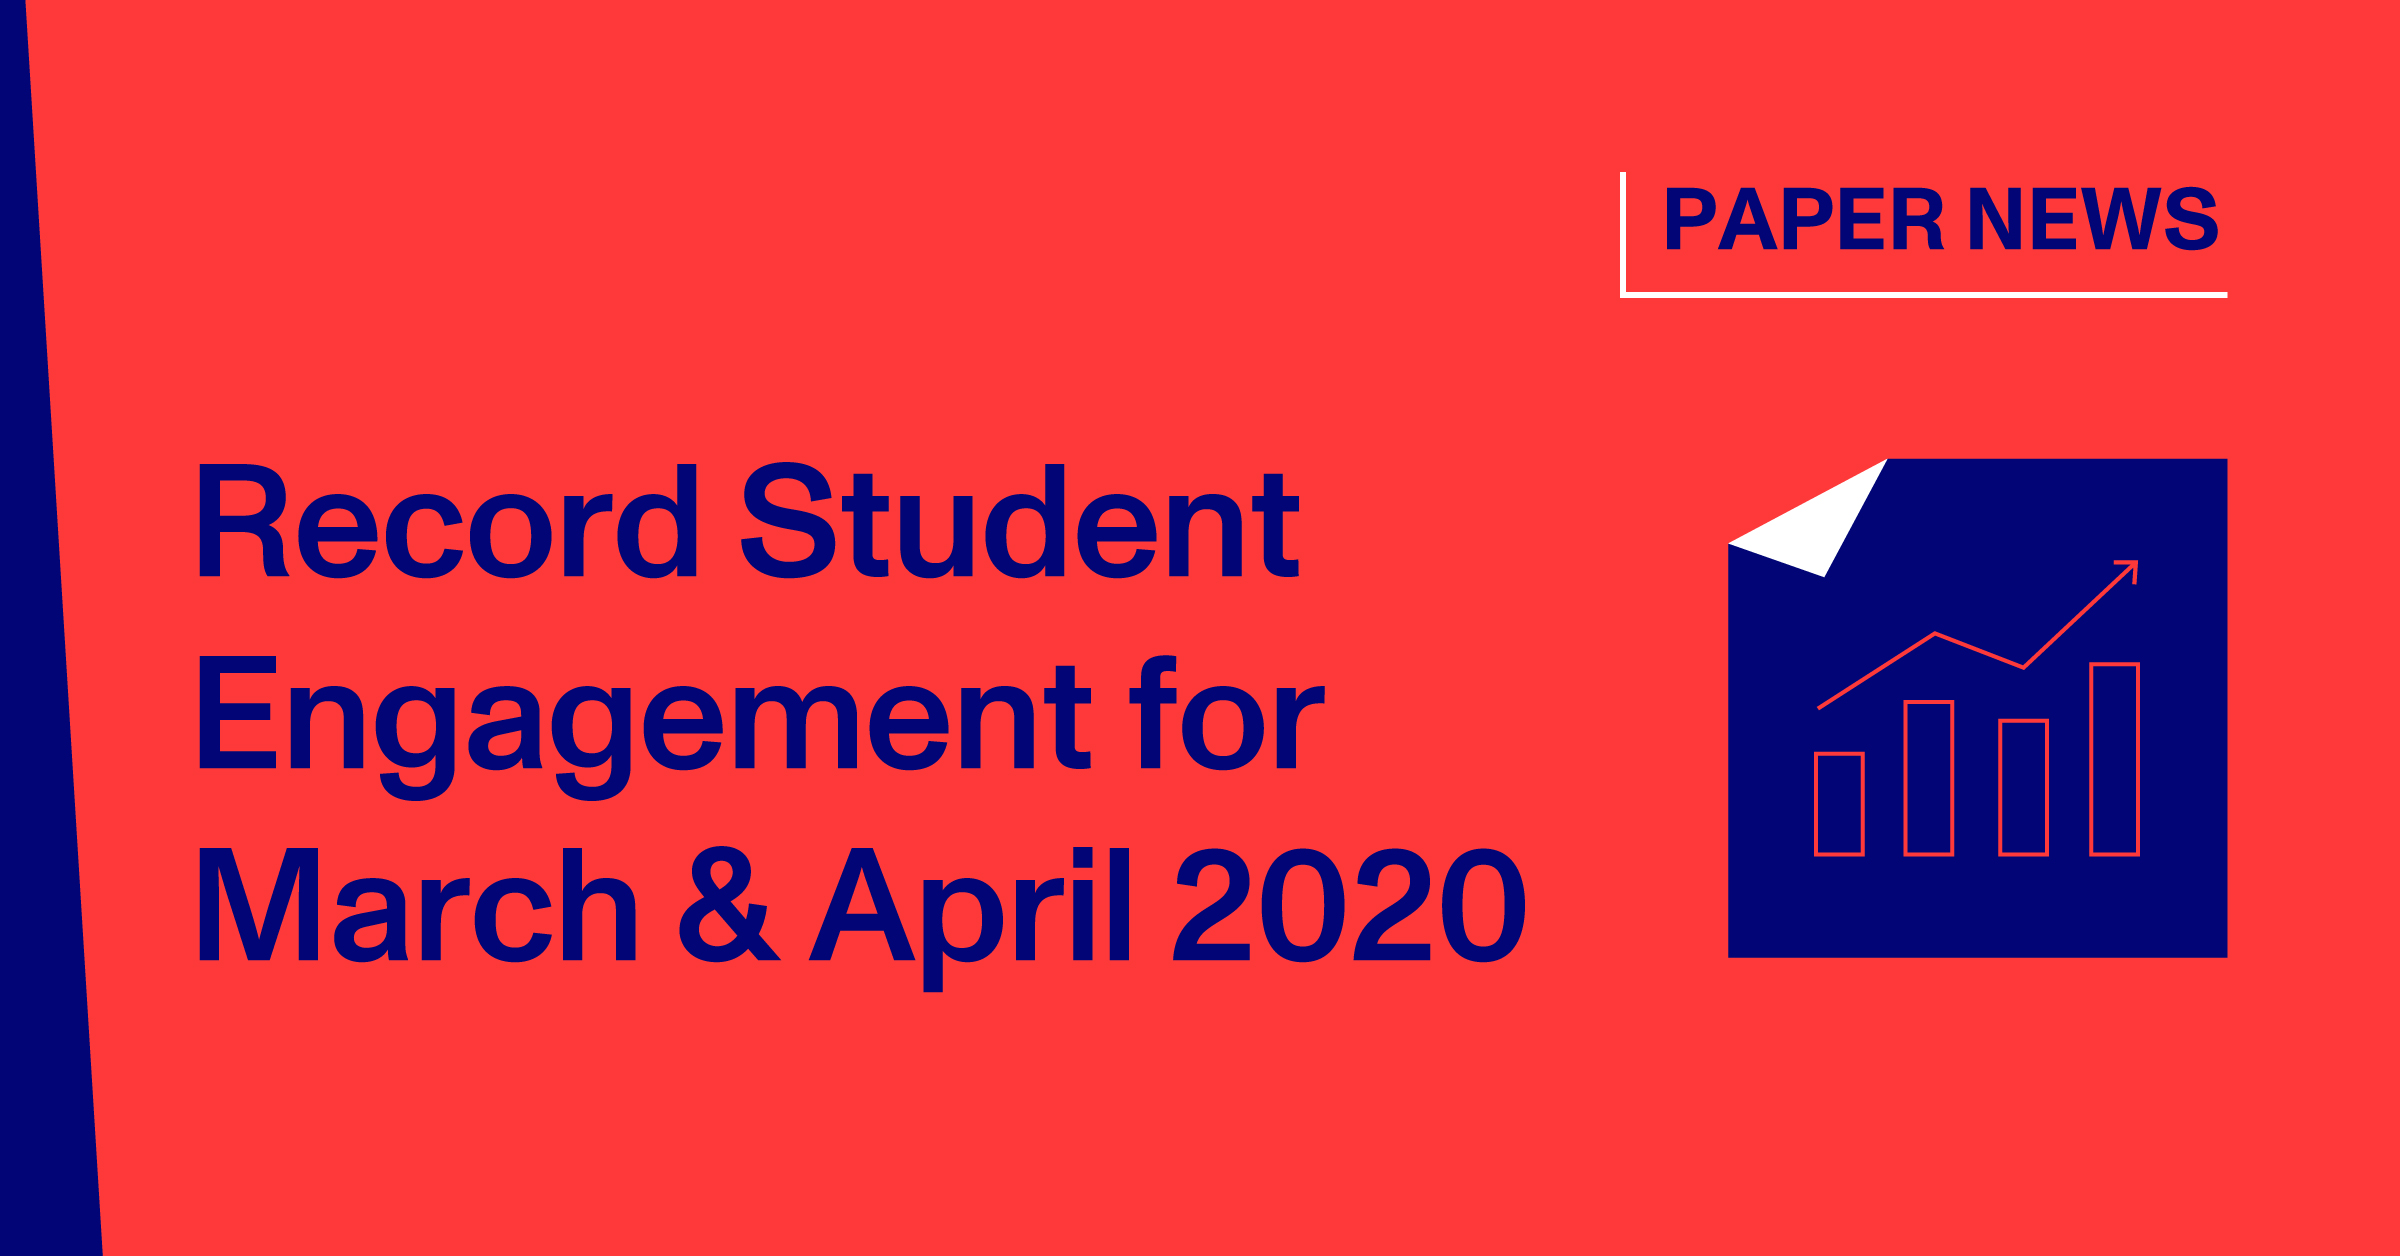 Blog Thumbnail, Record Student Engagement in March & April 2020